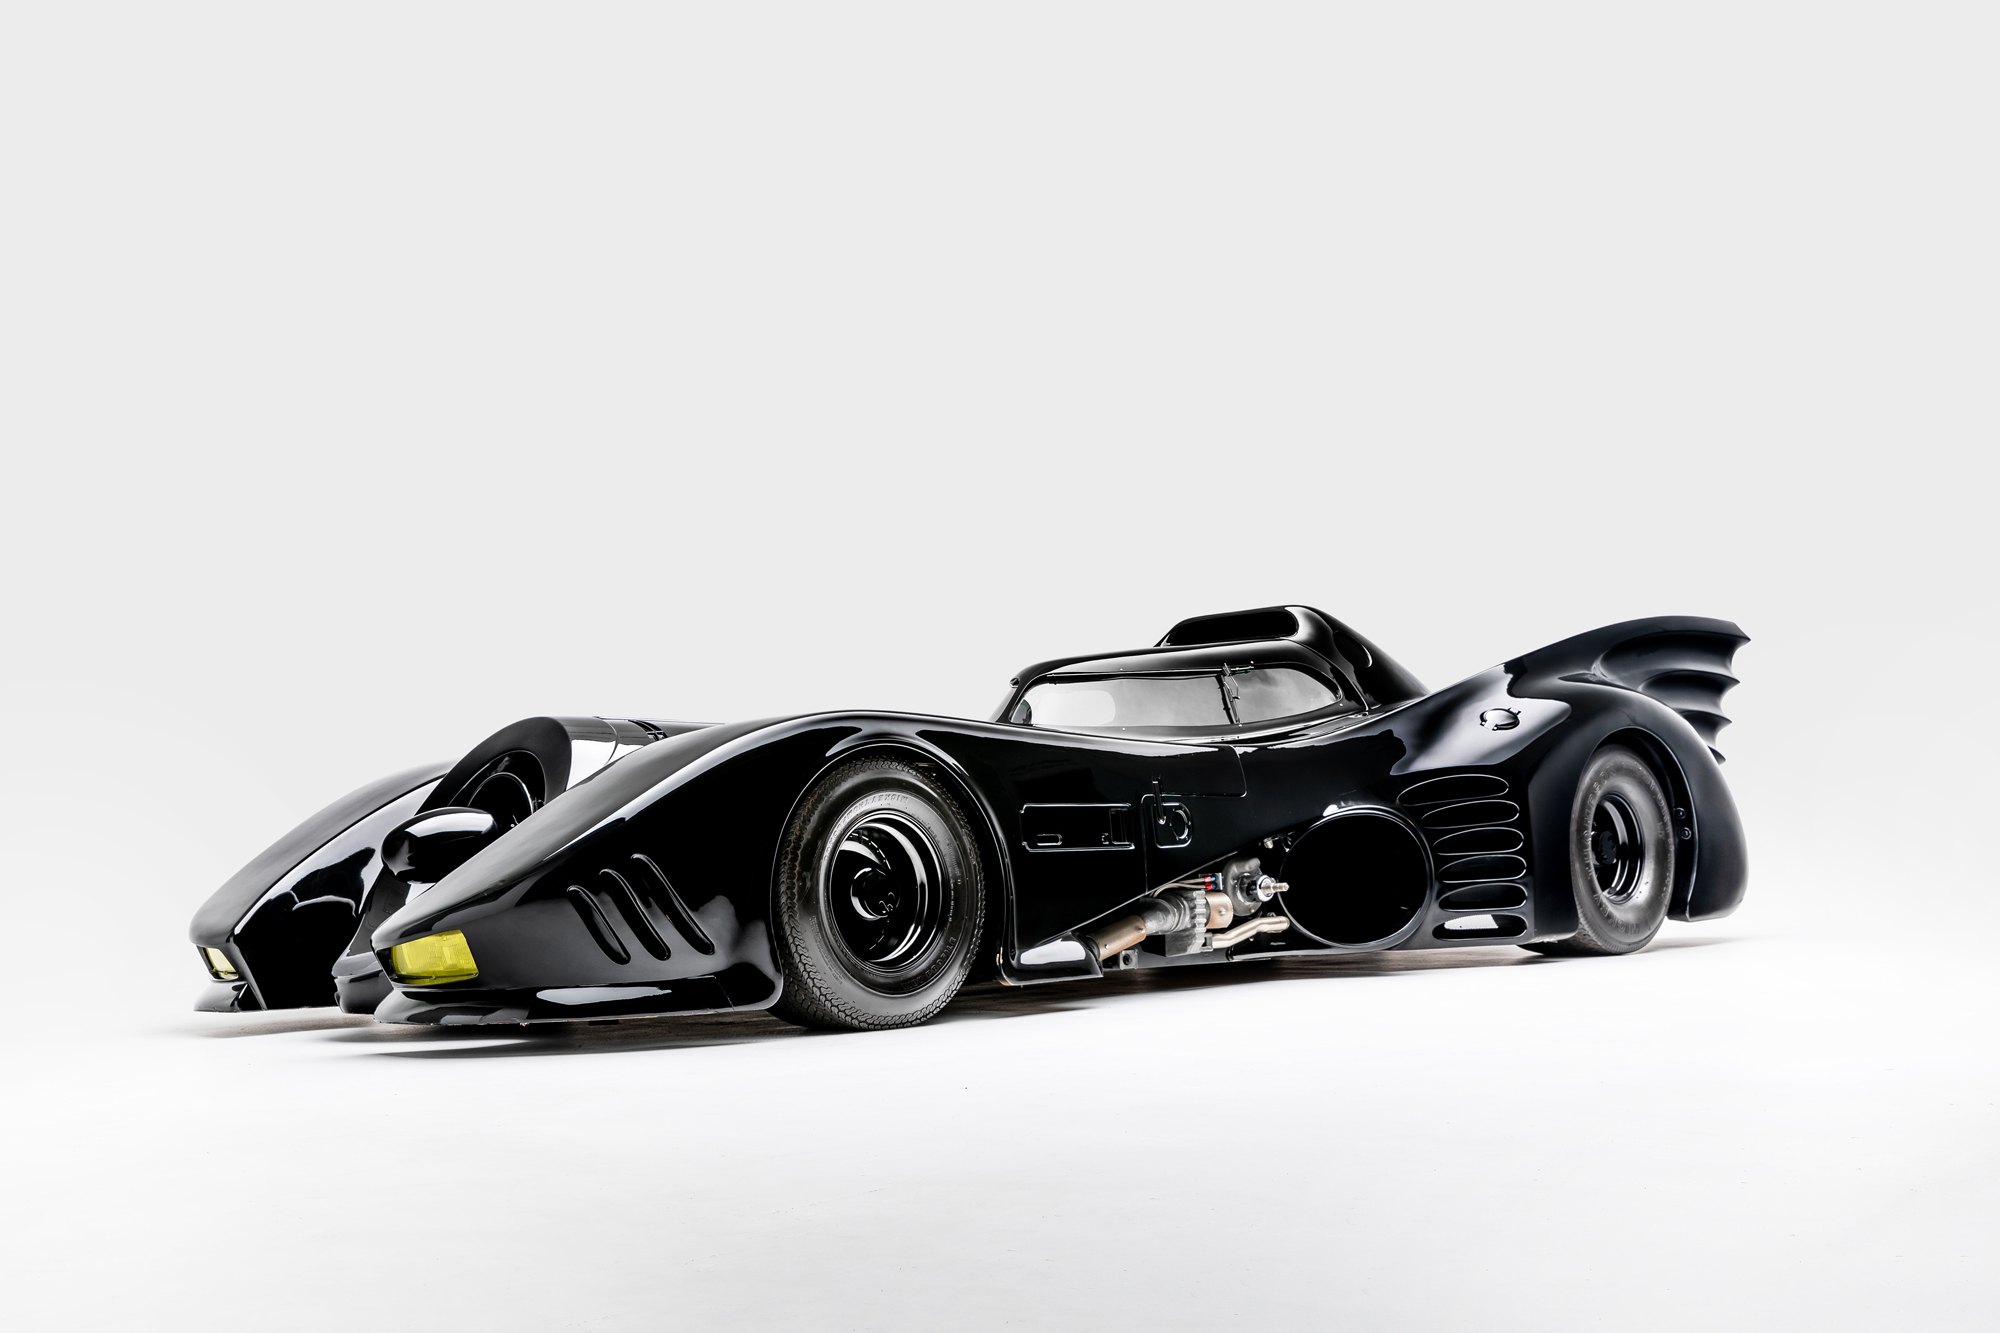 Batman (1989) and Batman Returns (1992) Batmobile